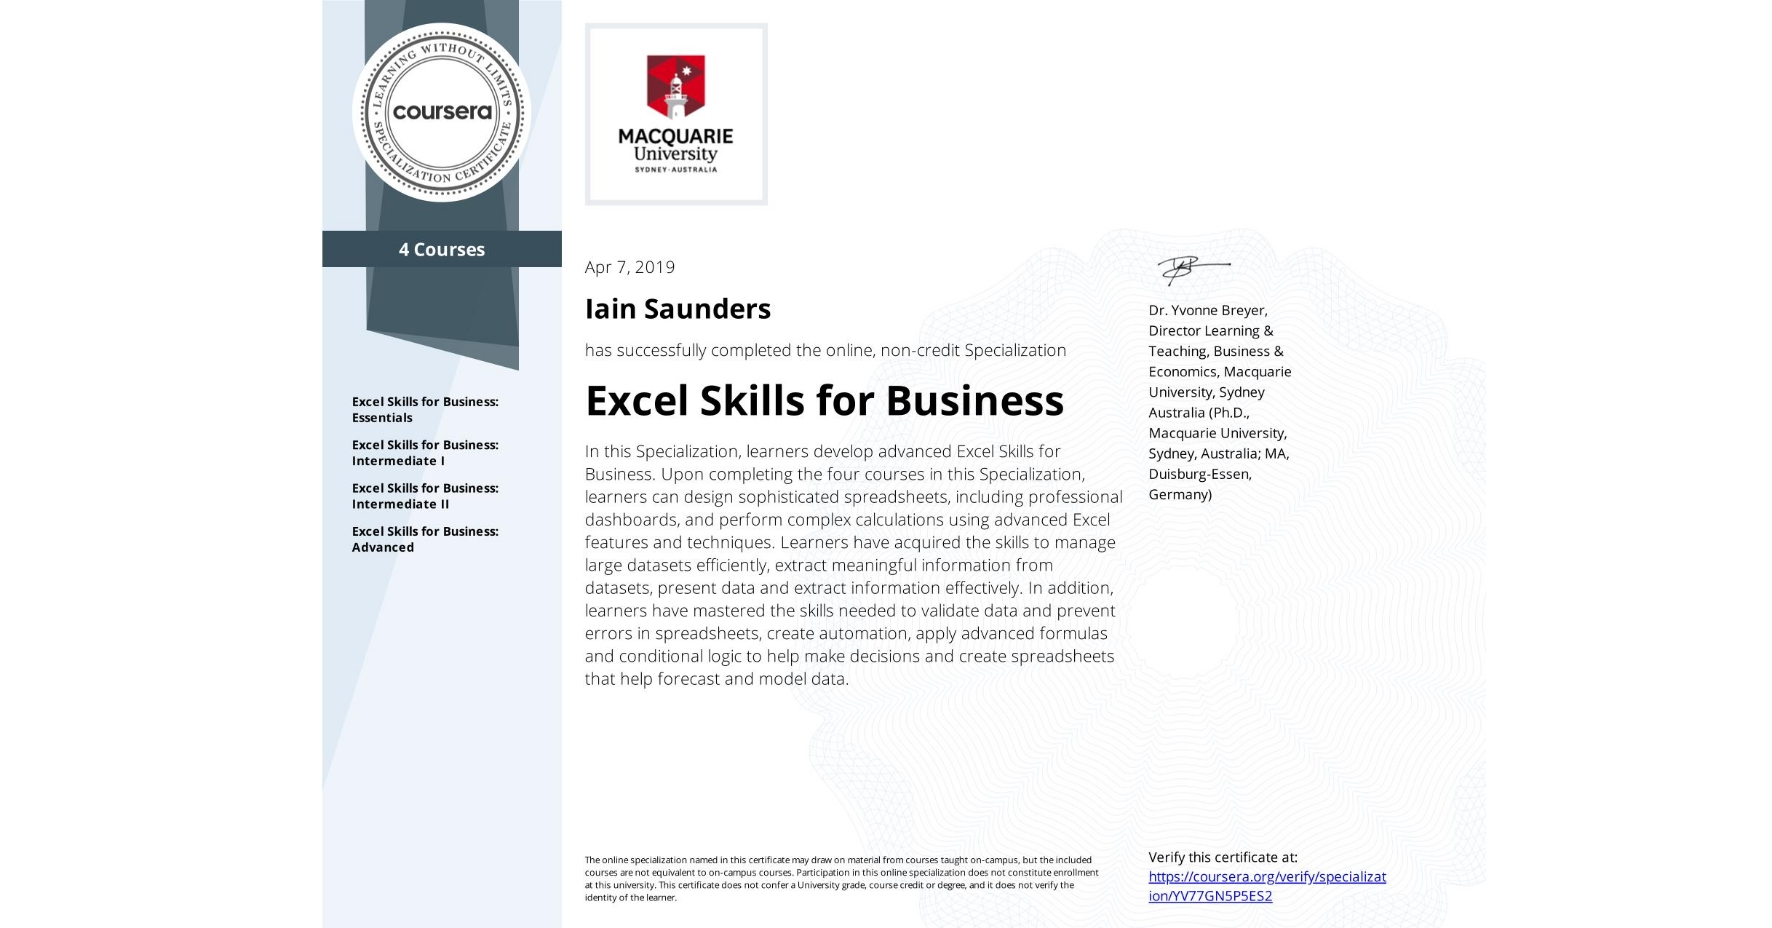 View certificate for Iain Saunders, Excel Skills for Business, offered through Coursera. In this Specialization, learners develop advanced Excel Skills for Business.  Upon completing the four courses in this Specialization, learners can design sophisticated spreadsheets, including professional dashboards, and perform complex calculations using advanced Excel features and techniques. Learners have acquired the skills to manage large datasets efficiently, extract meaningful information from datasets, present data and extract information effectively. In addition, learners have mastered the skills needed to validate data and prevent errors in spreadsheets, create automation, apply advanced formulas and conditional logic to help make decisions and create spreadsheets that help forecast and model data.